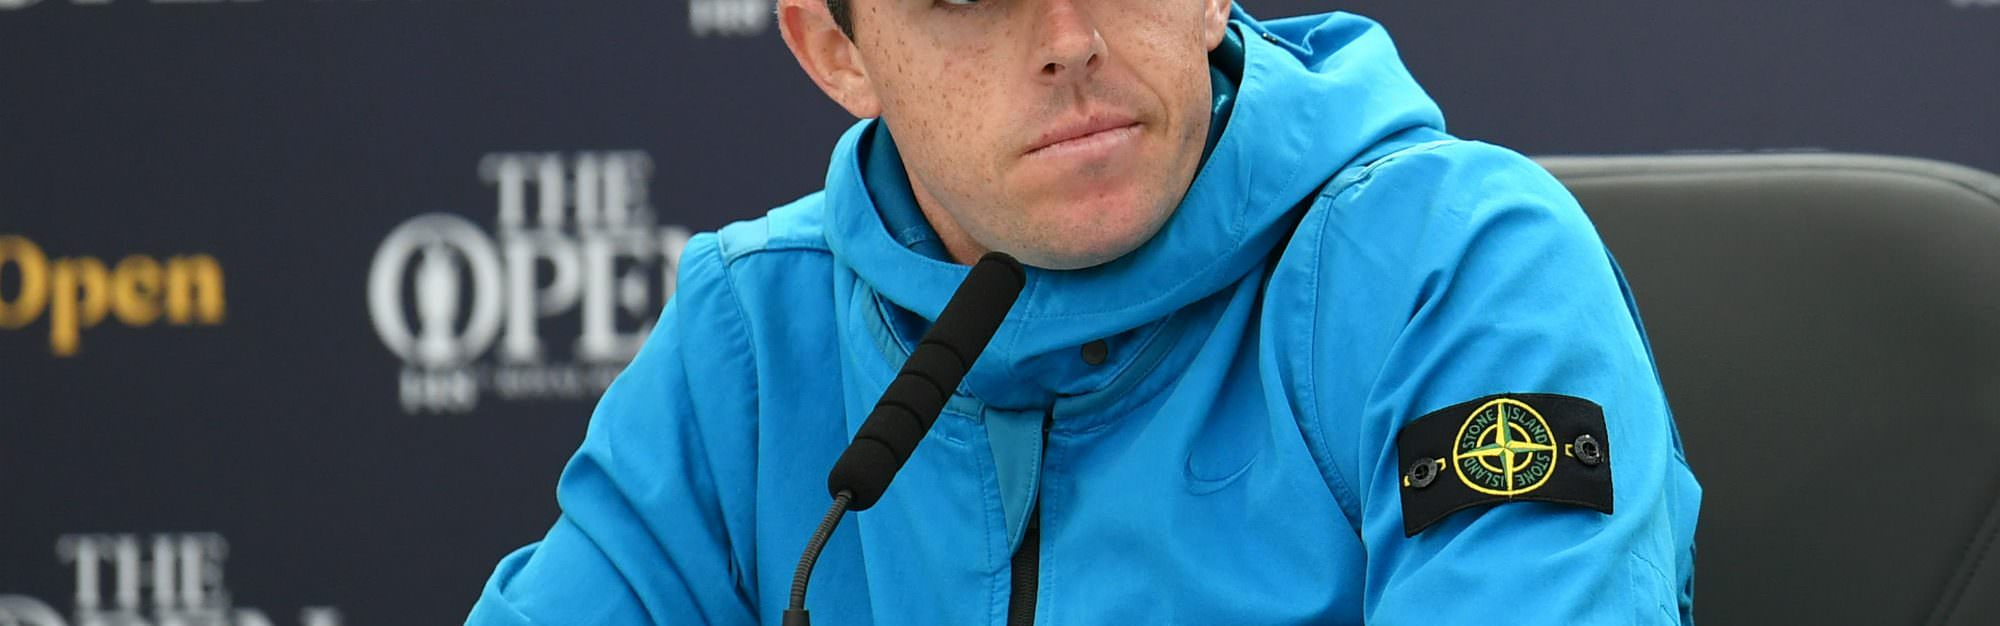 What on earth was Rory wearing at the Open?